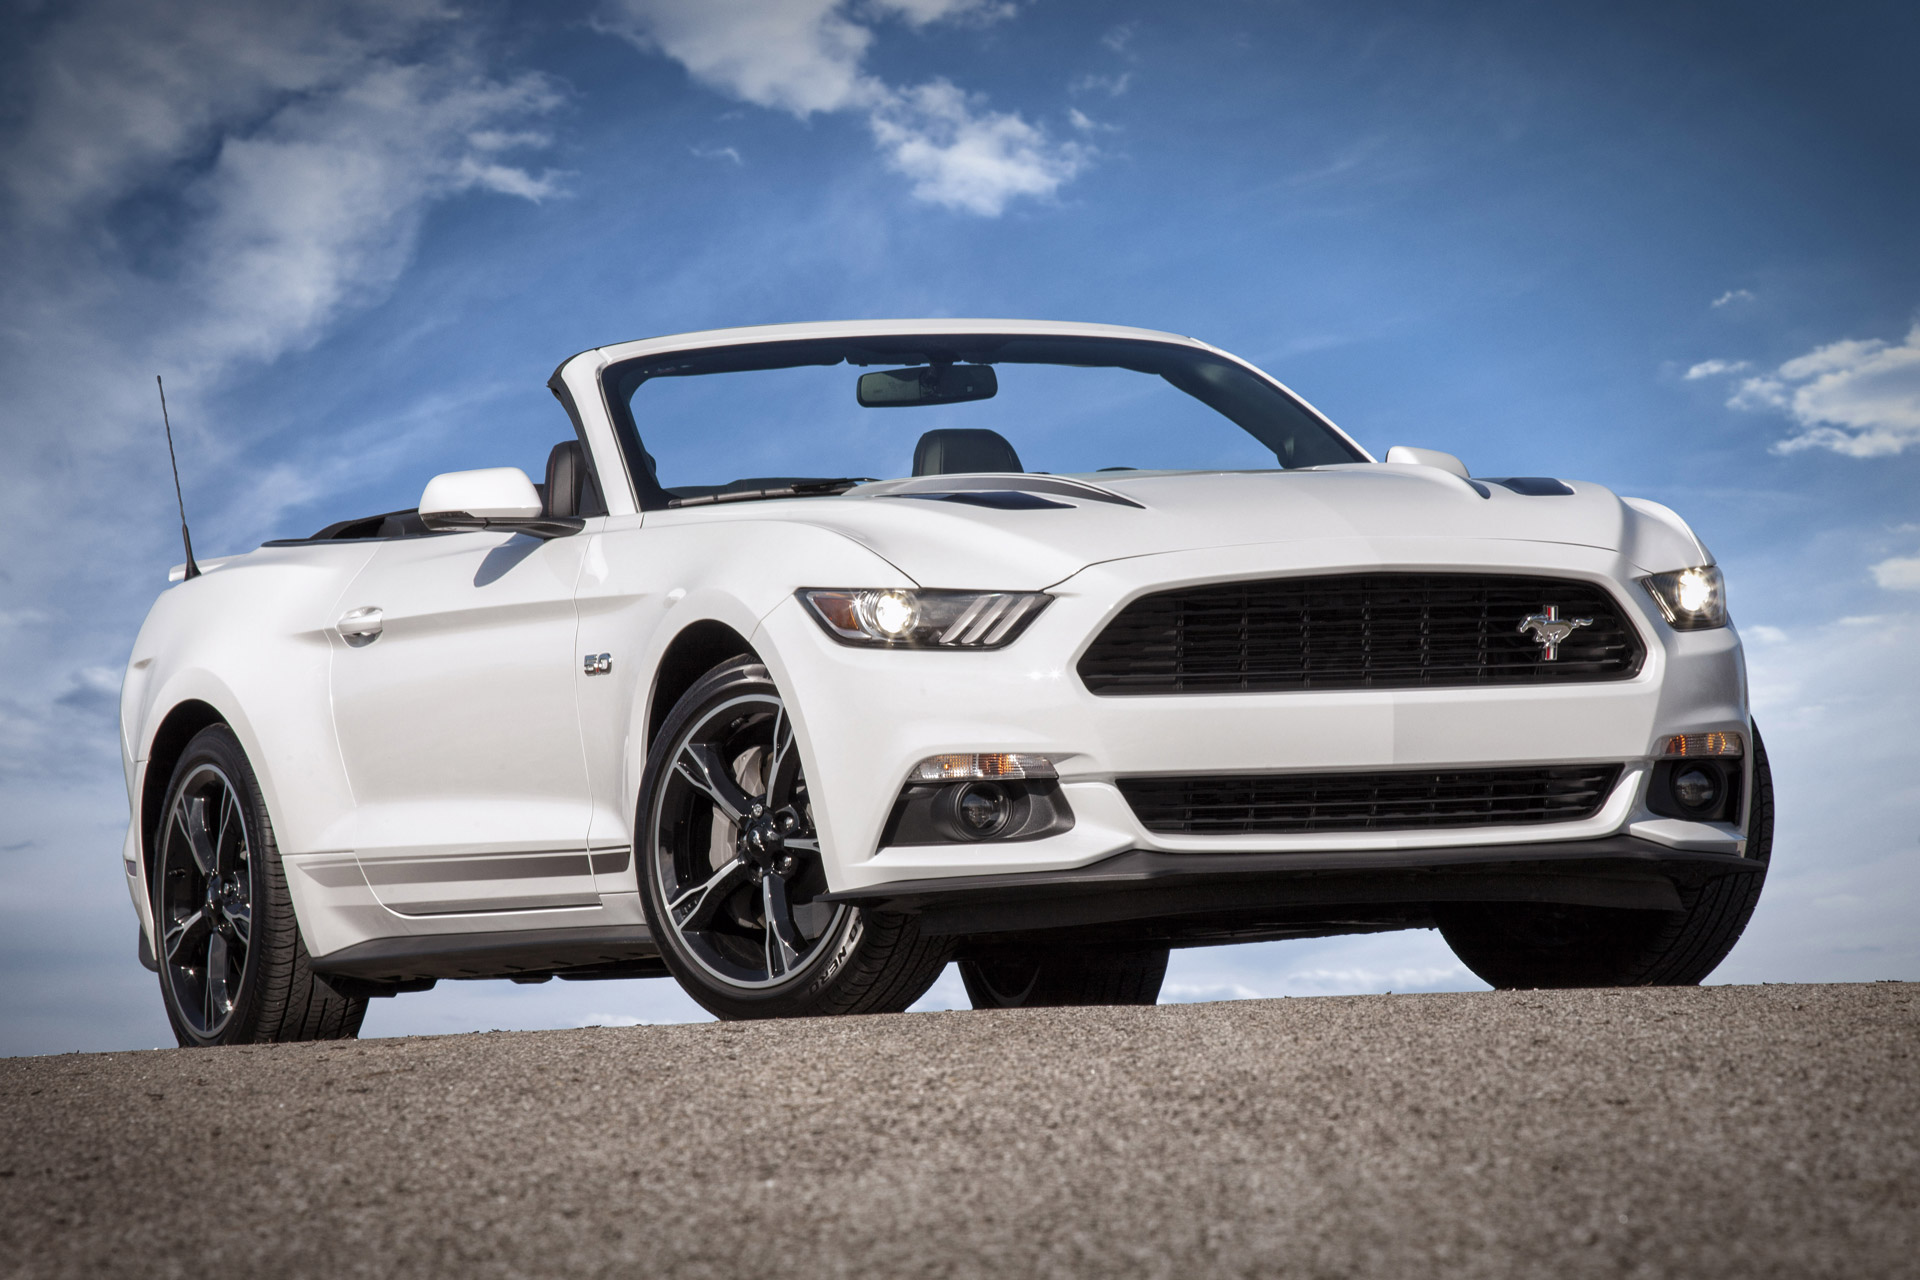 2016 ford mustang gets minor updates california special. Black Bedroom Furniture Sets. Home Design Ideas